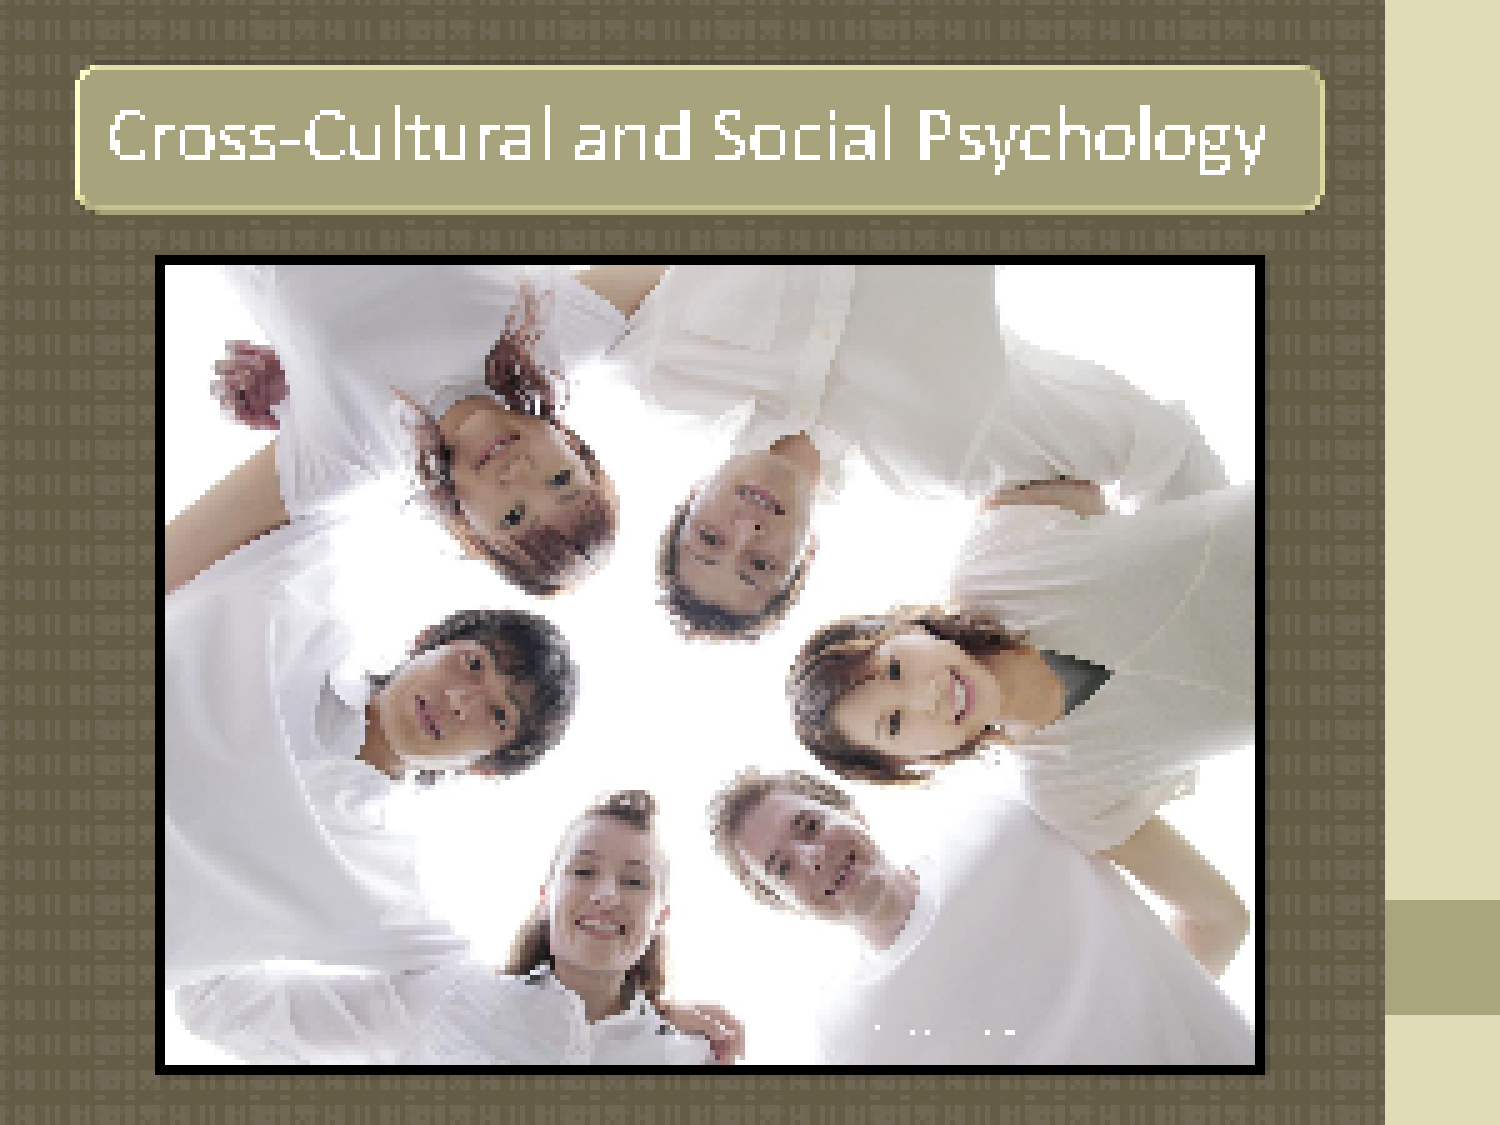 cultural psychology and cross cultural psychology A possible topic could be either on topics in cultural and cross-cultural psychology (eg, self-concept, motivation, interpersonal relations, intergroup processes) or ways in which individuals' adjustment to new cultural environment (eg, immigration, sojourning, exchange study) impact their physical and psychological health.